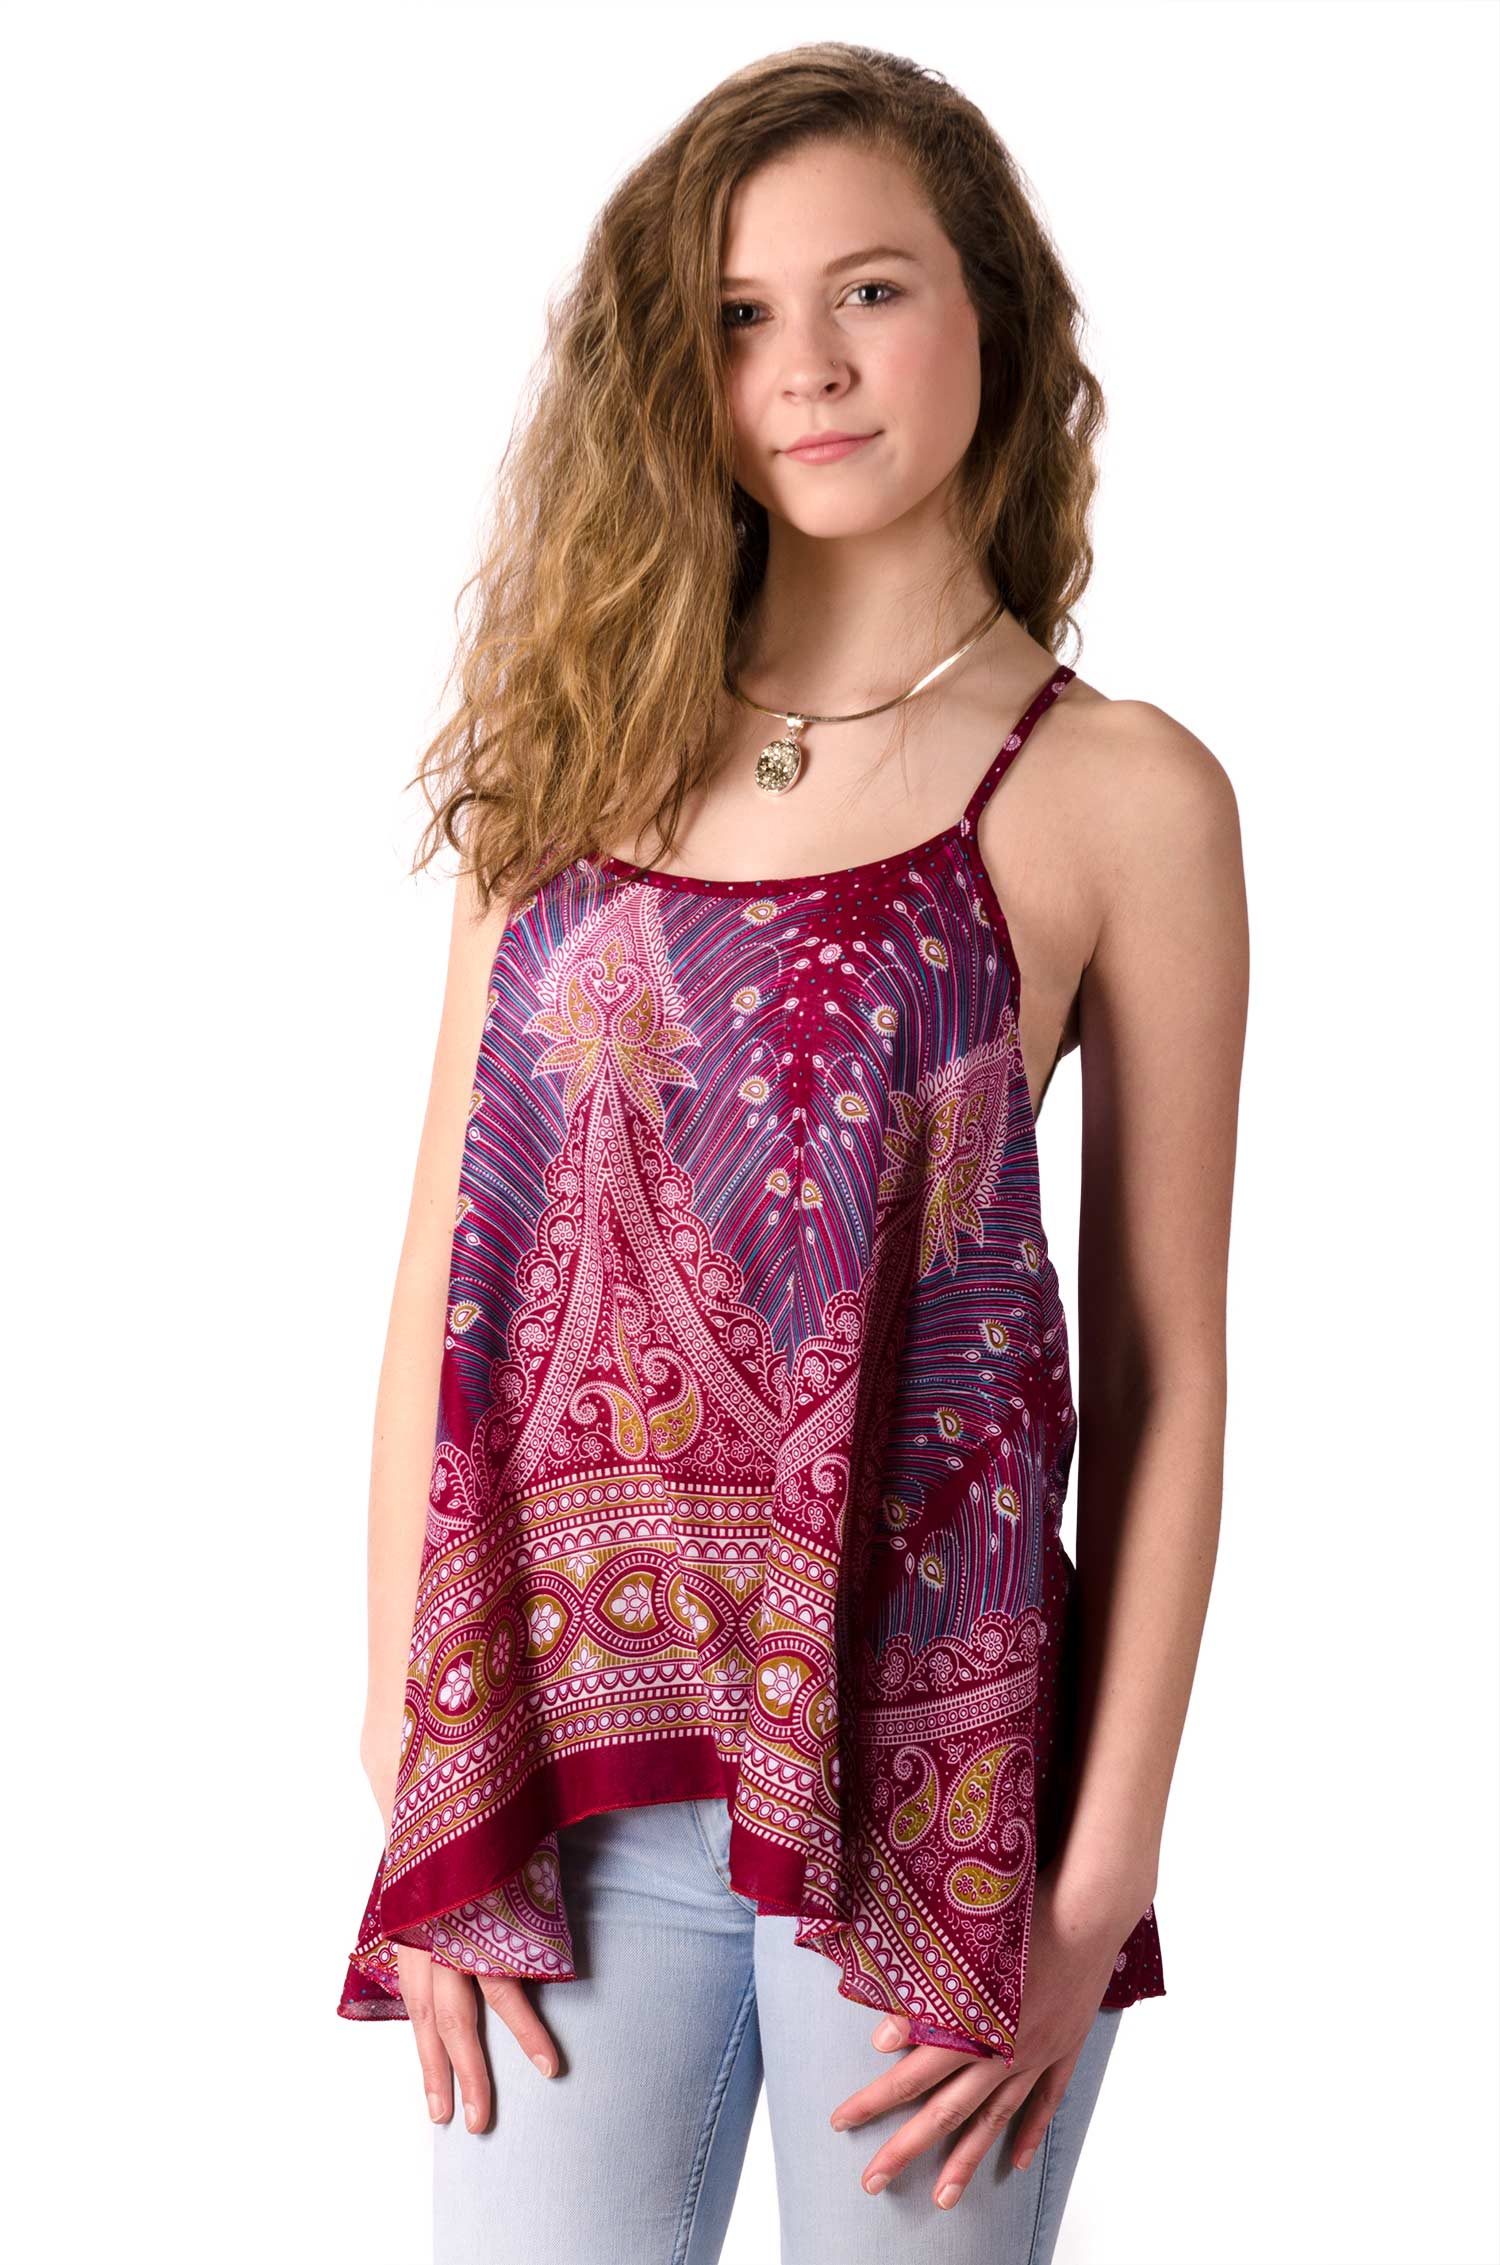 Peacock Print Cami Top - Red Multi - 4484R